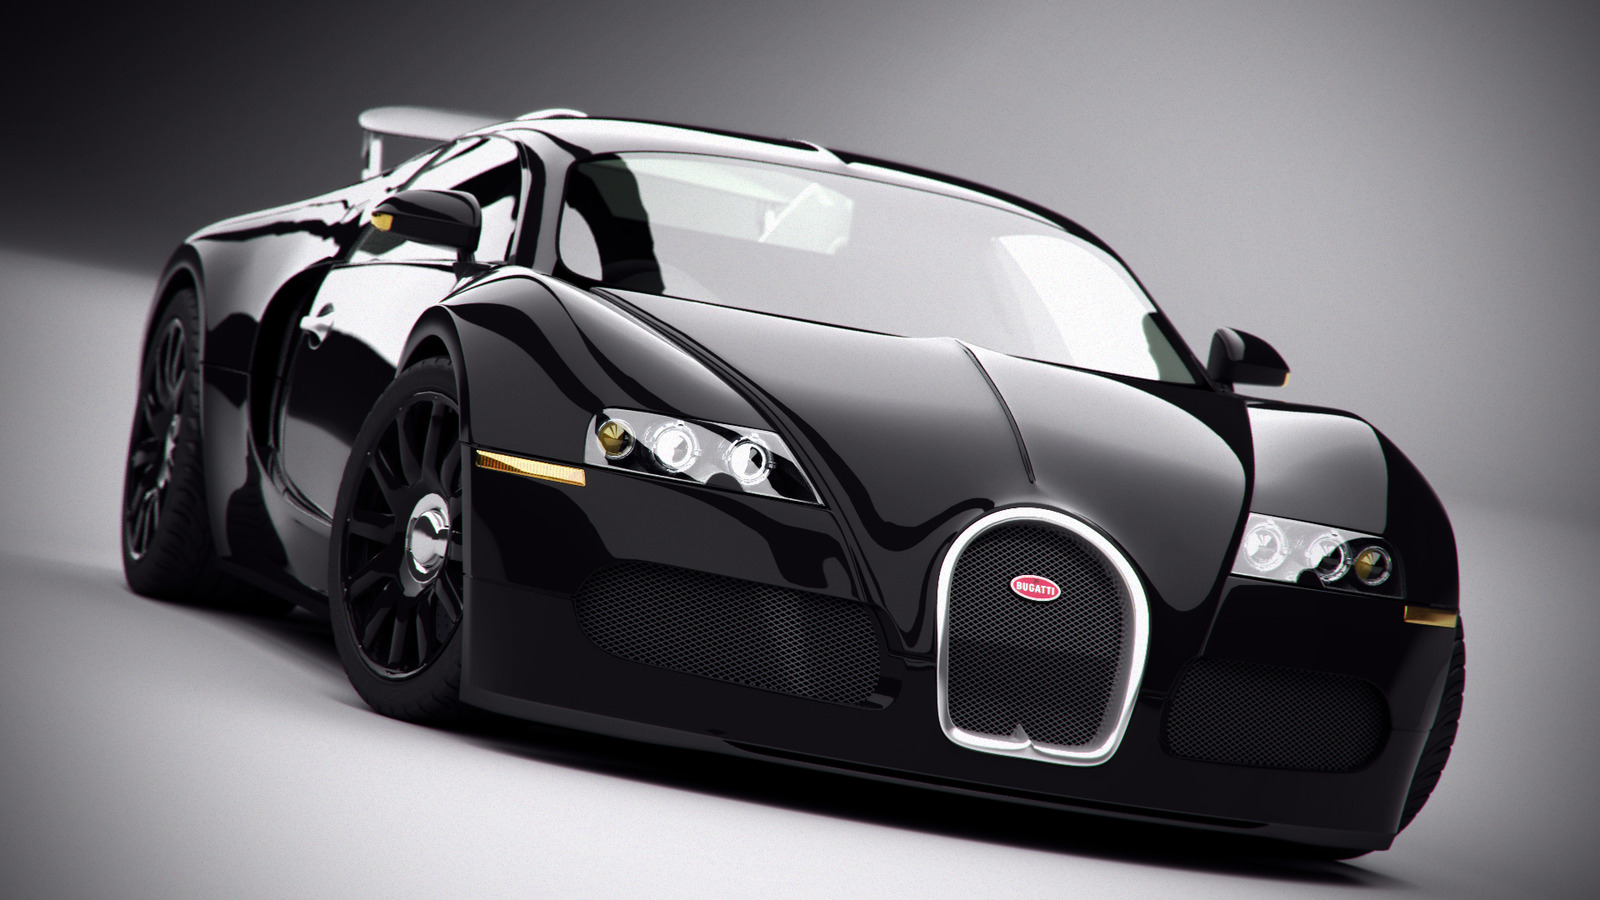 Hd Classic Wallpapers Bugatti Veyron Images